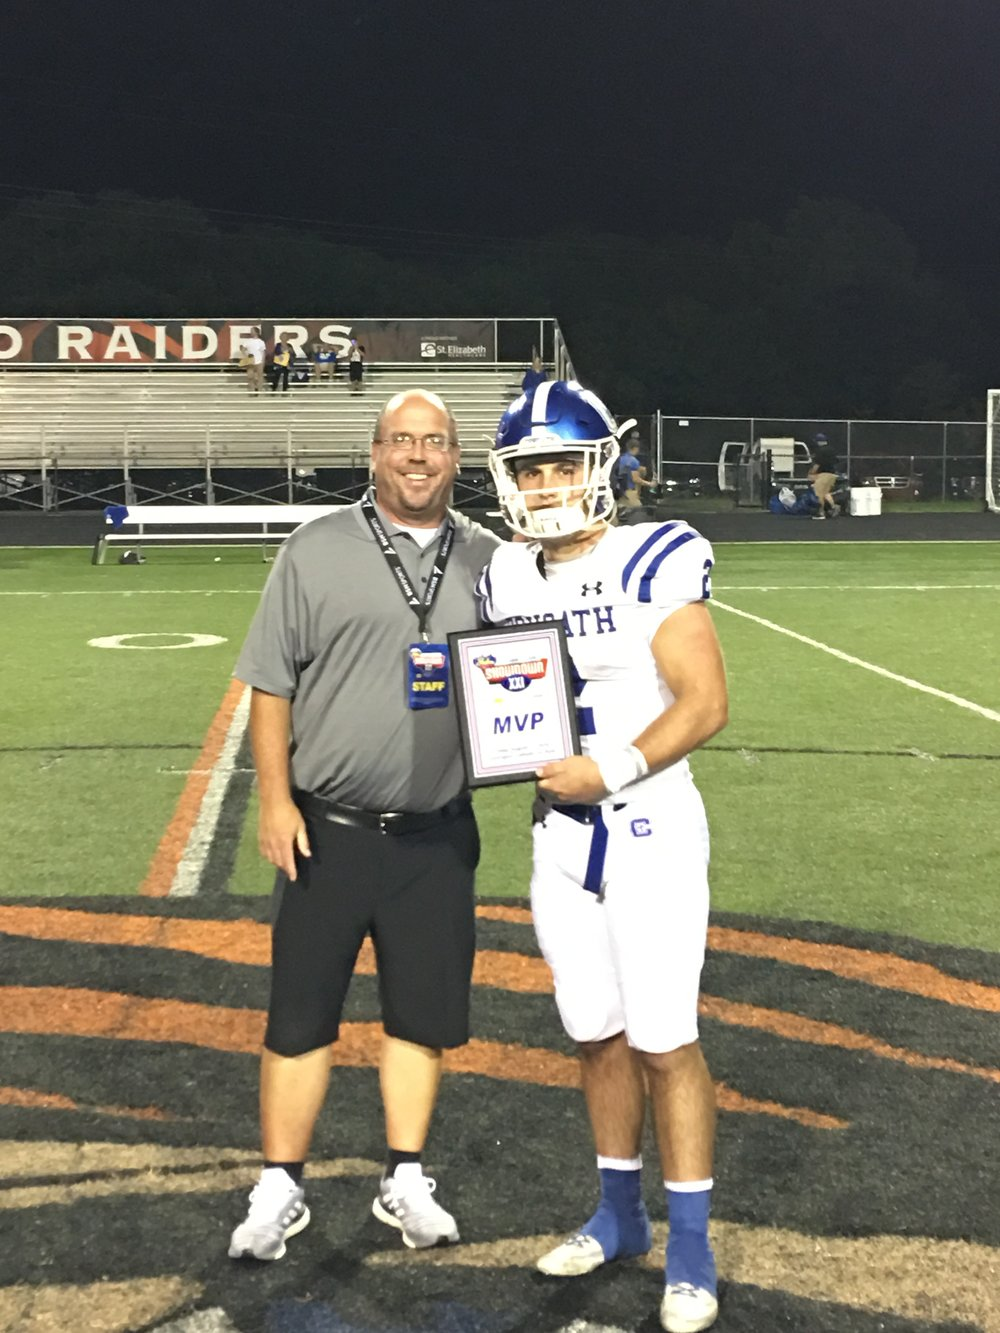 CovCath MVP: Casey McGinness